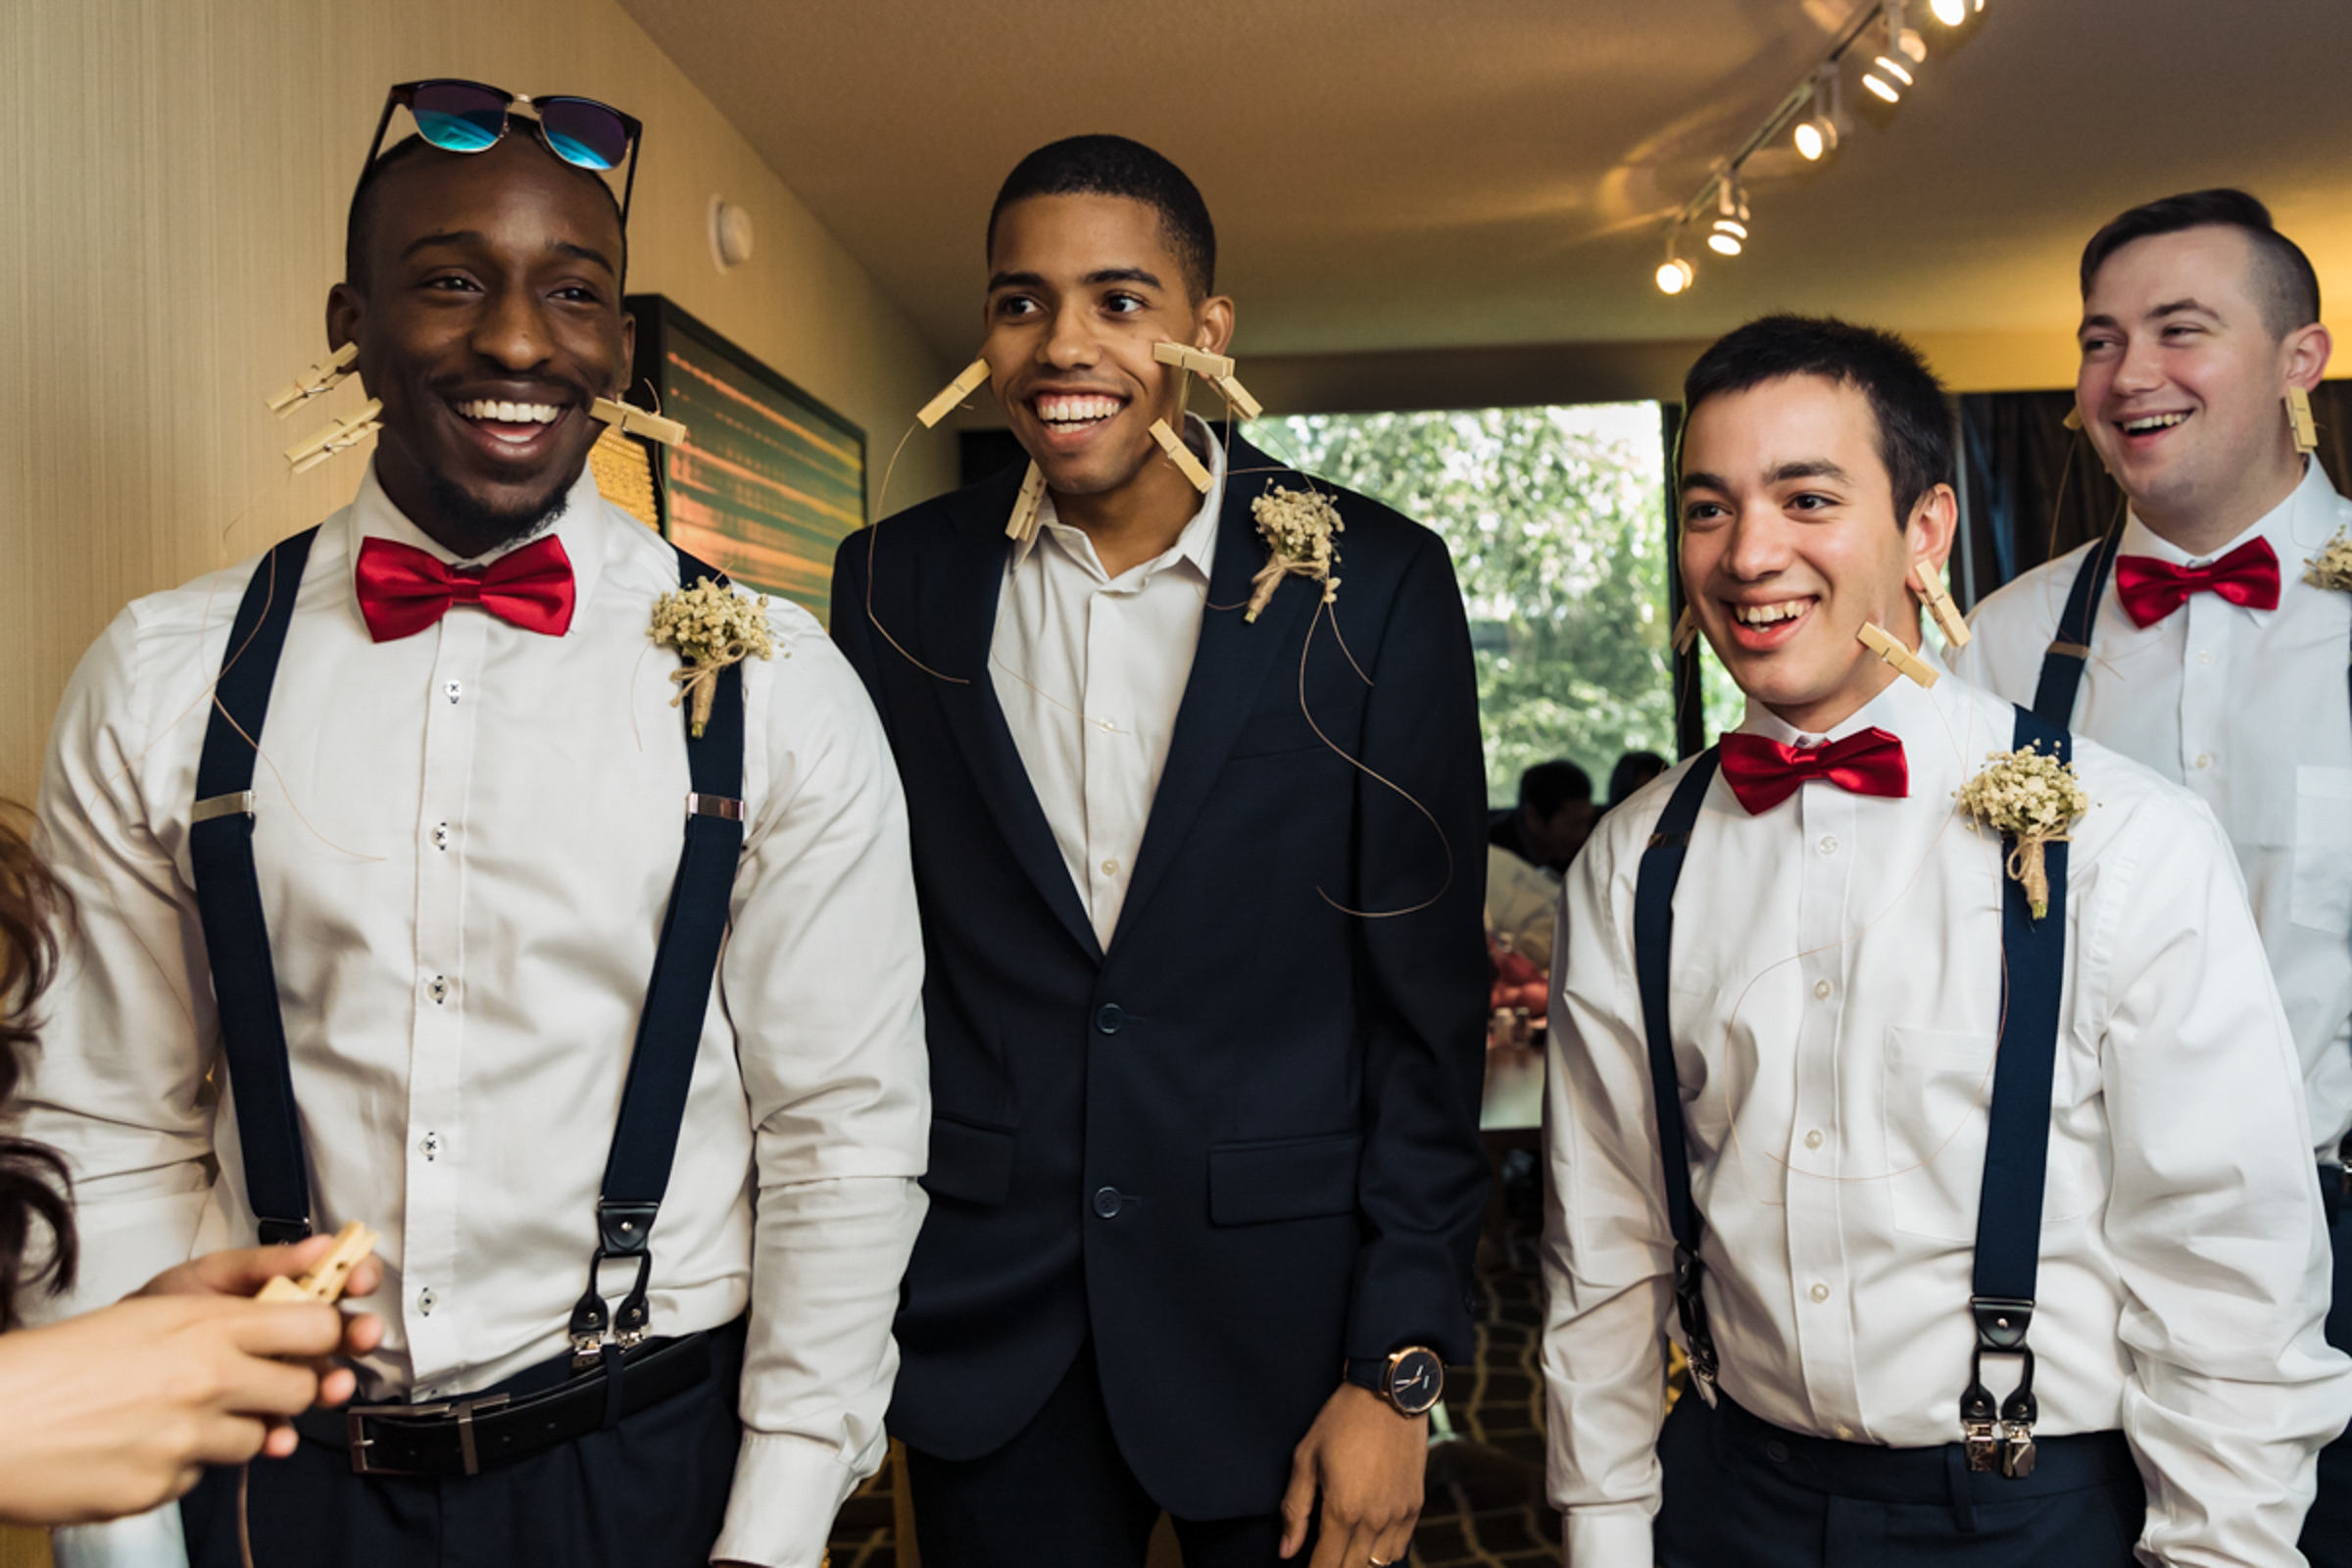 groomsmen-smiling-with-clothespins-attached-yun-li-photography